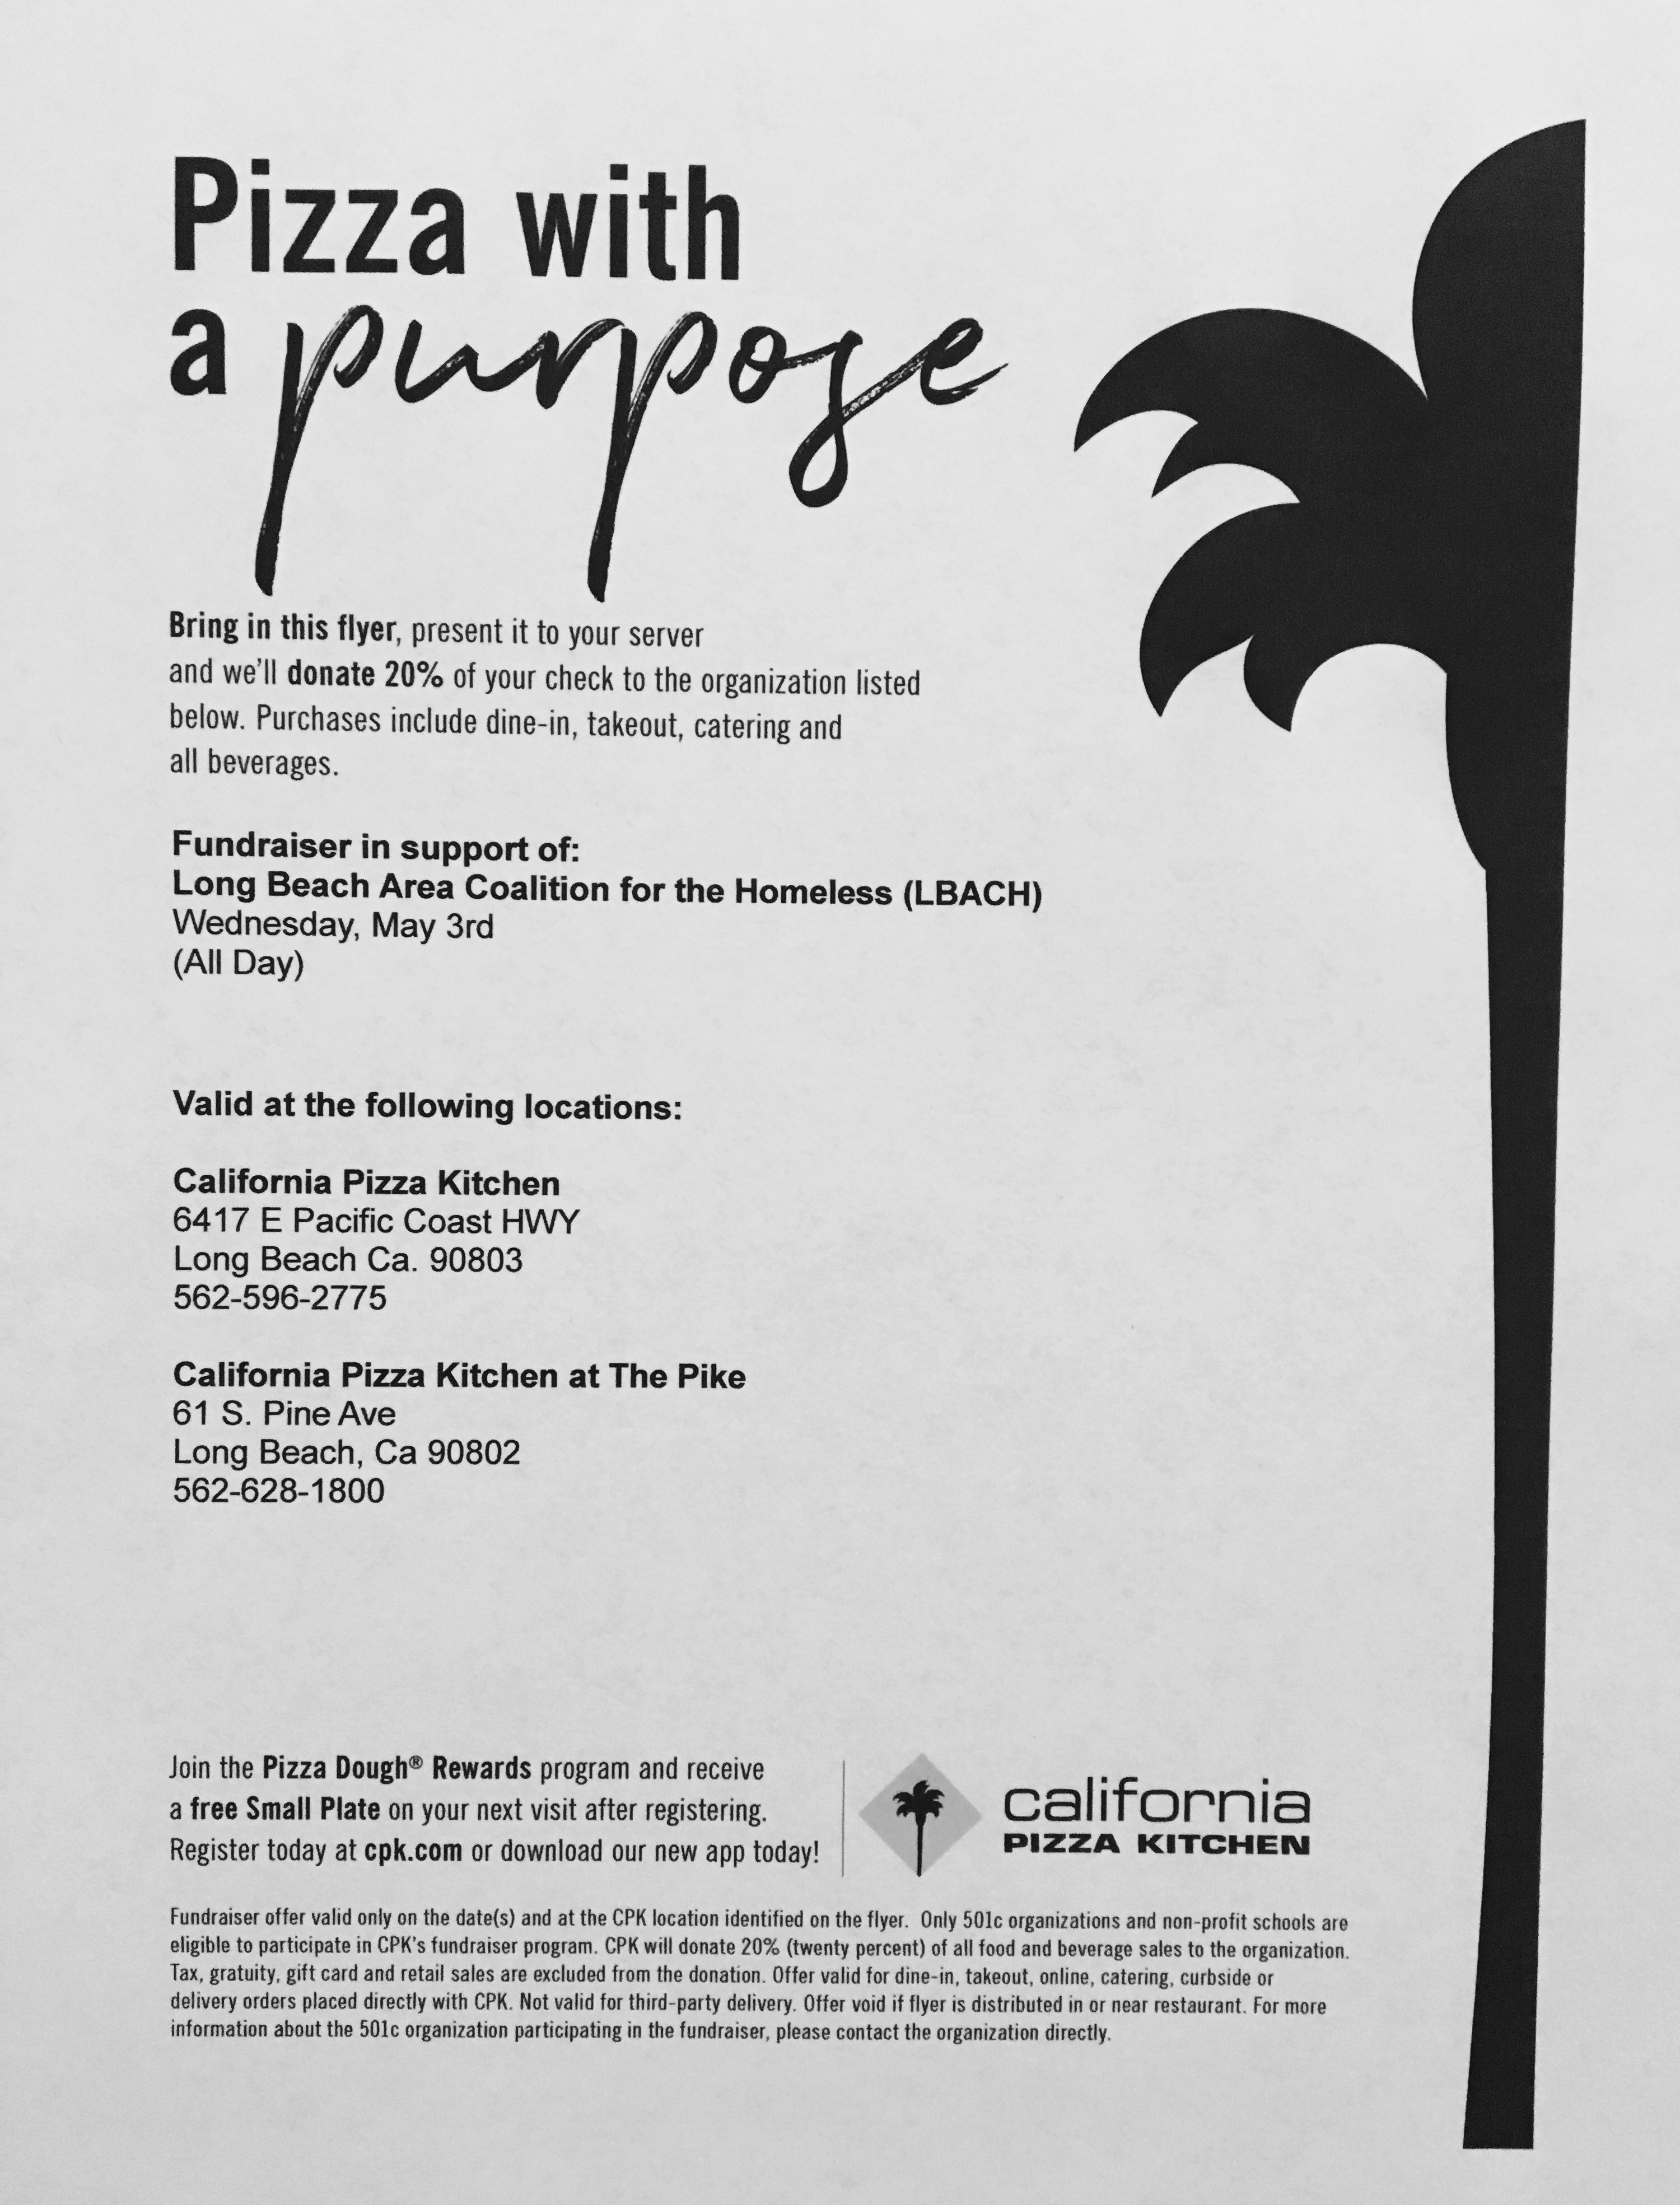 Fundraiser At Cpk Long Beach Area Coalition For The Homeless